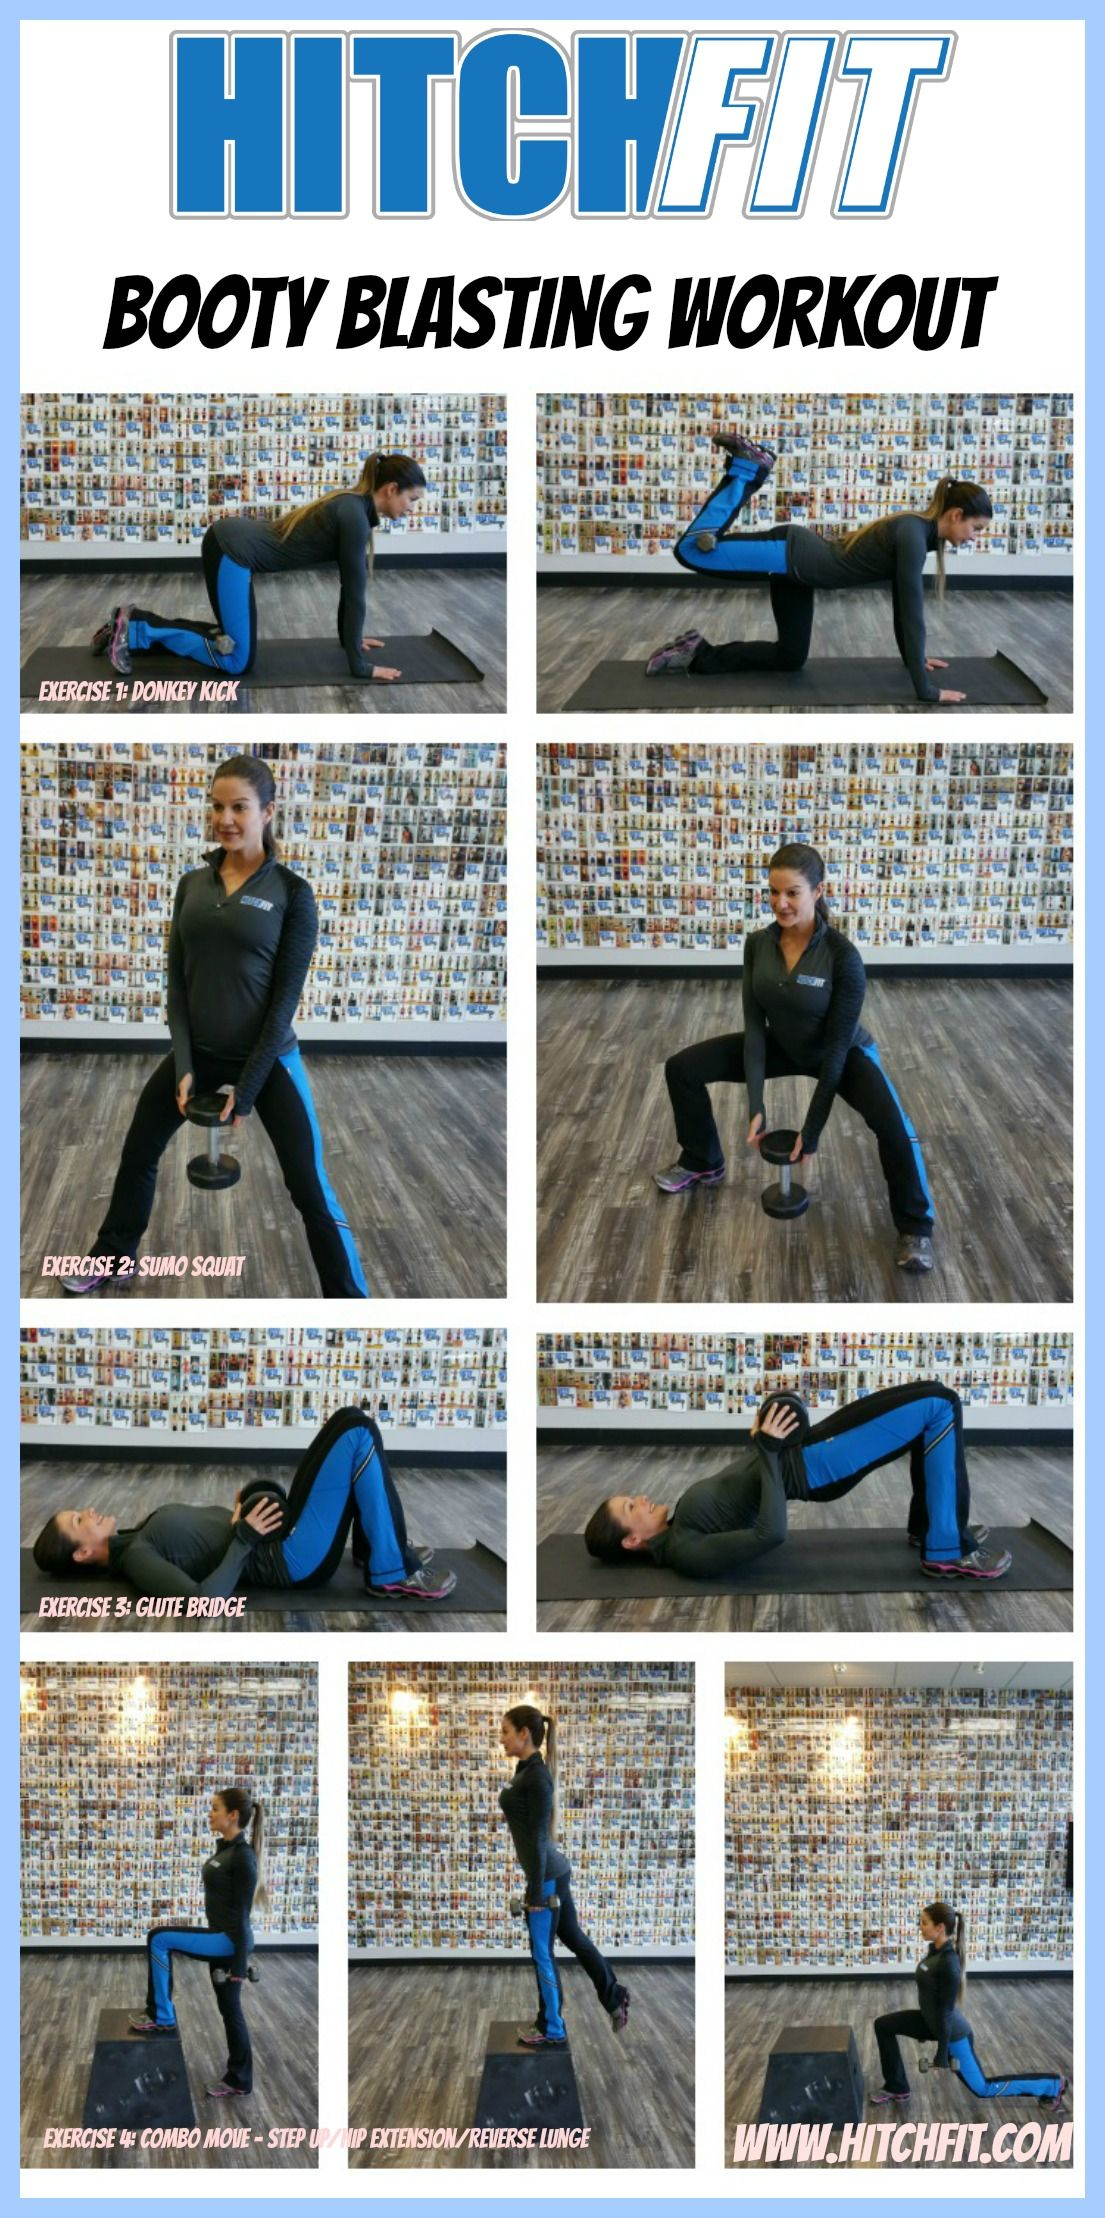 Booty Blasting Workout! – 4 GREAT GLUTE EXERCISES